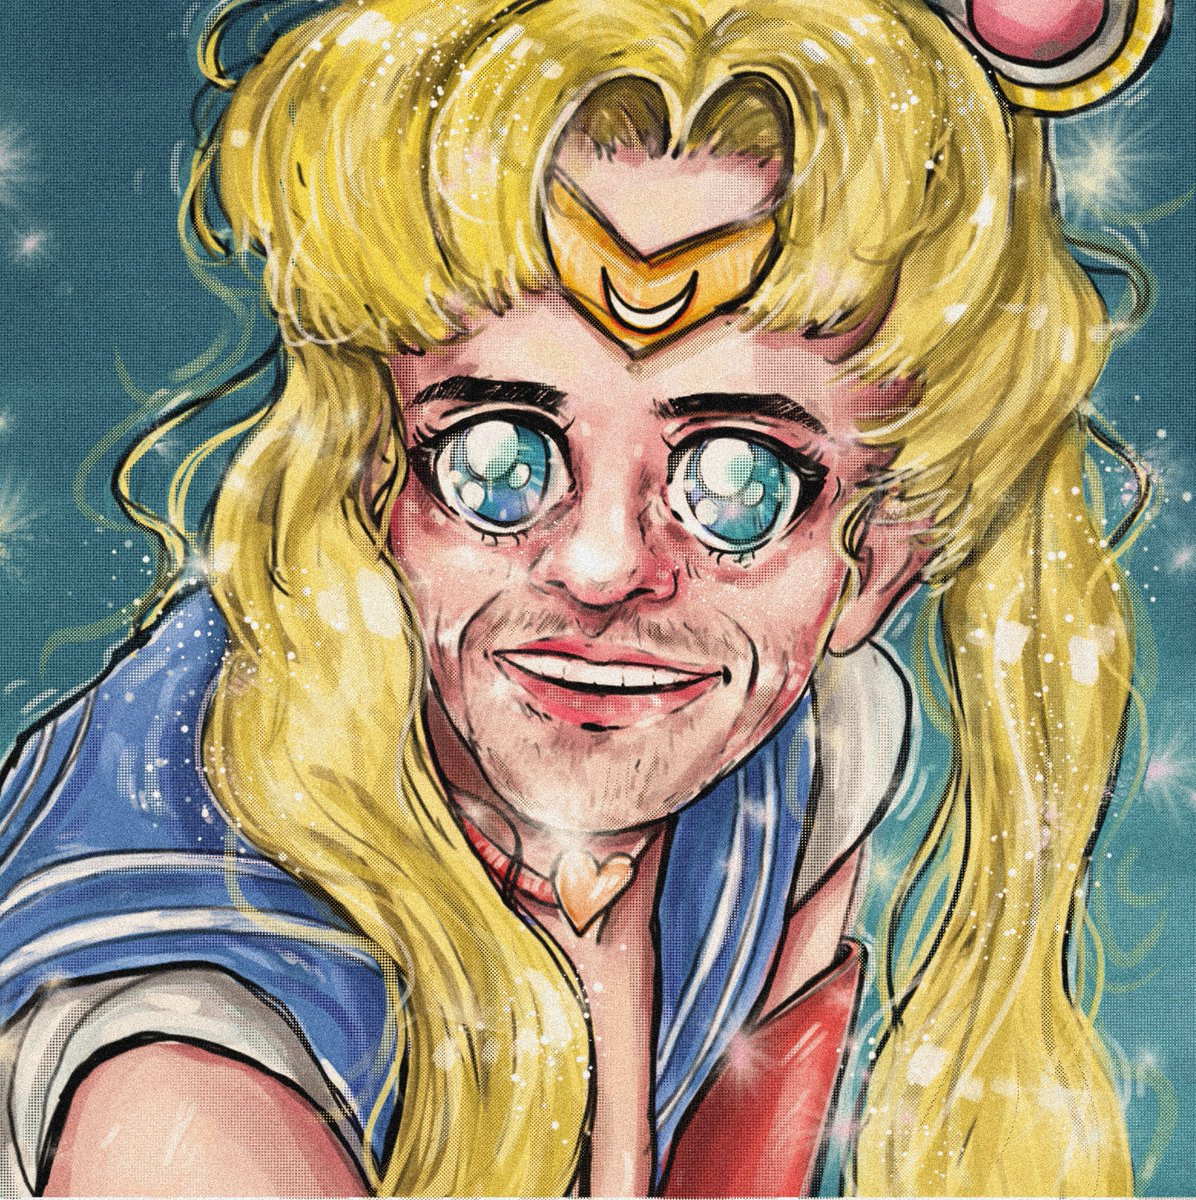 @jacksfilms #YIAYlogo jack when he is sailing the moon, idk i haven't watched sailor moon lol